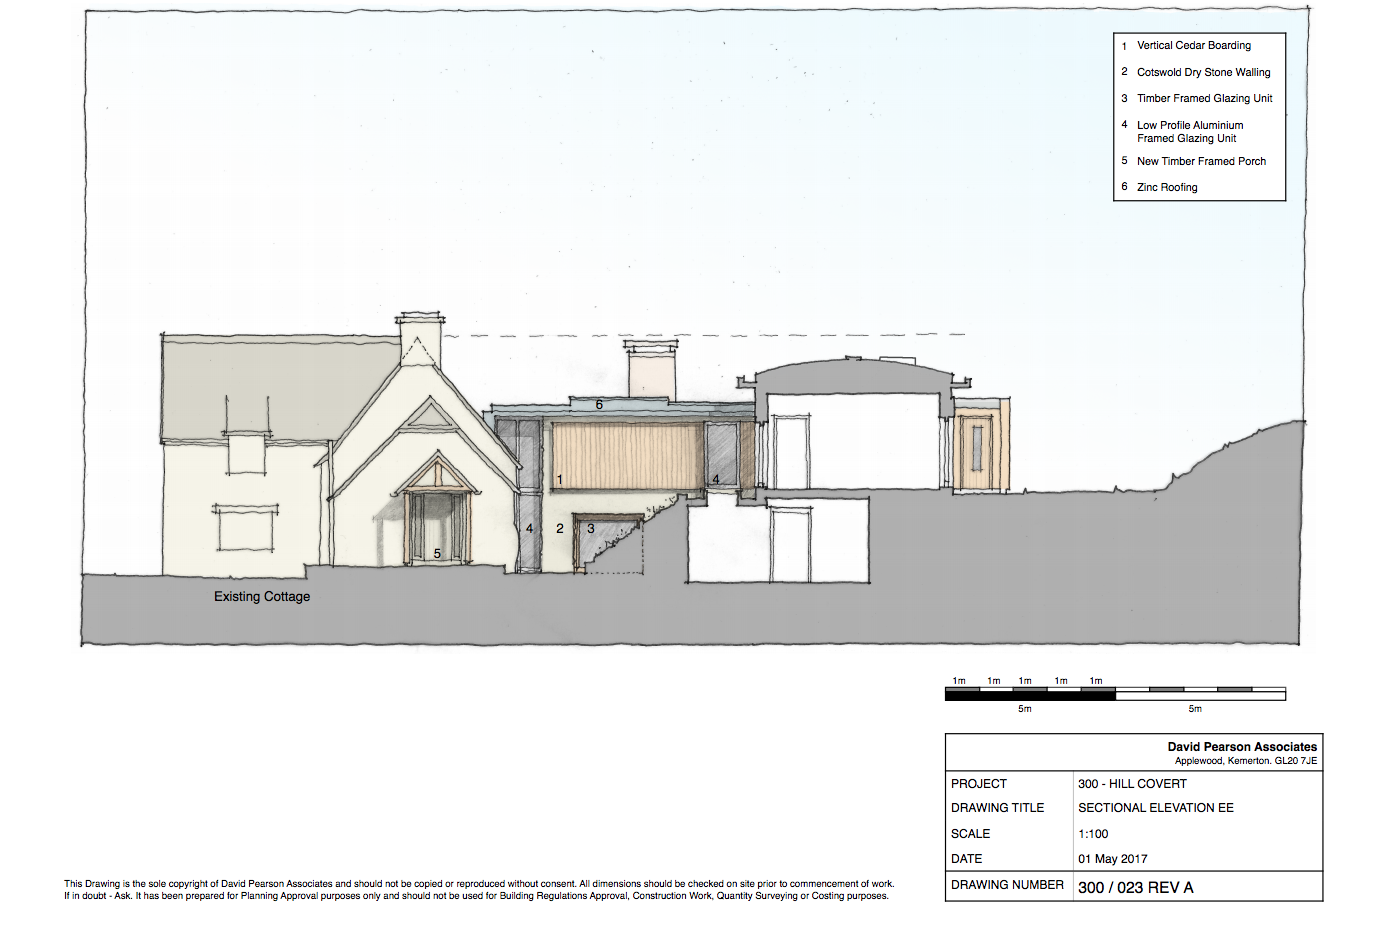 Hill Covert Planning Permission